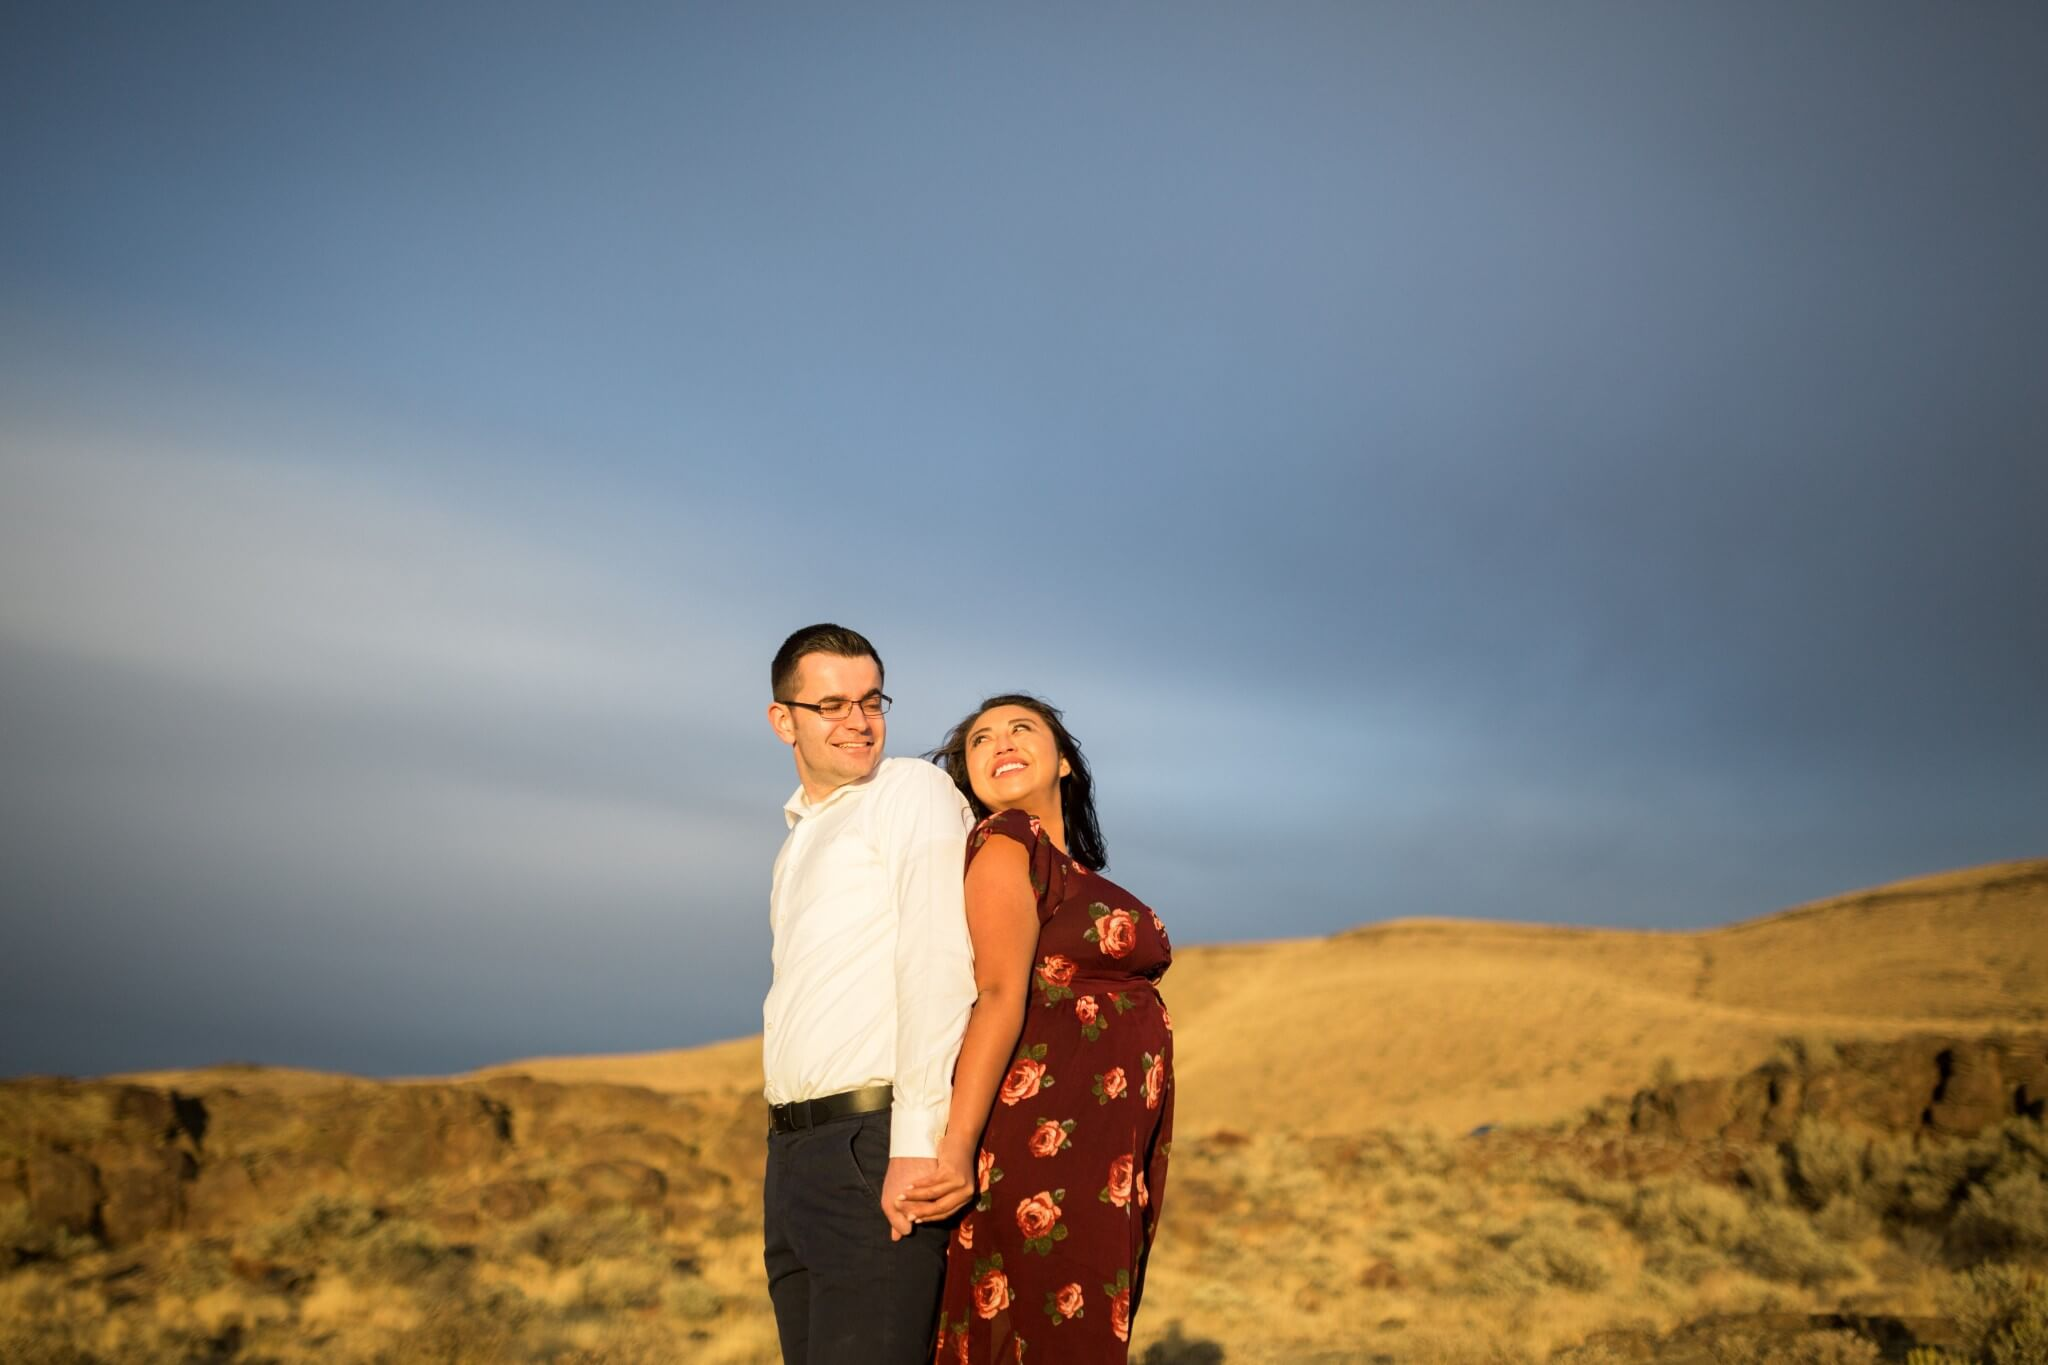 Lesly & Michael Vantage Engagement by Bill Weisgerber Spokane Photographer (49 of 71).jpg